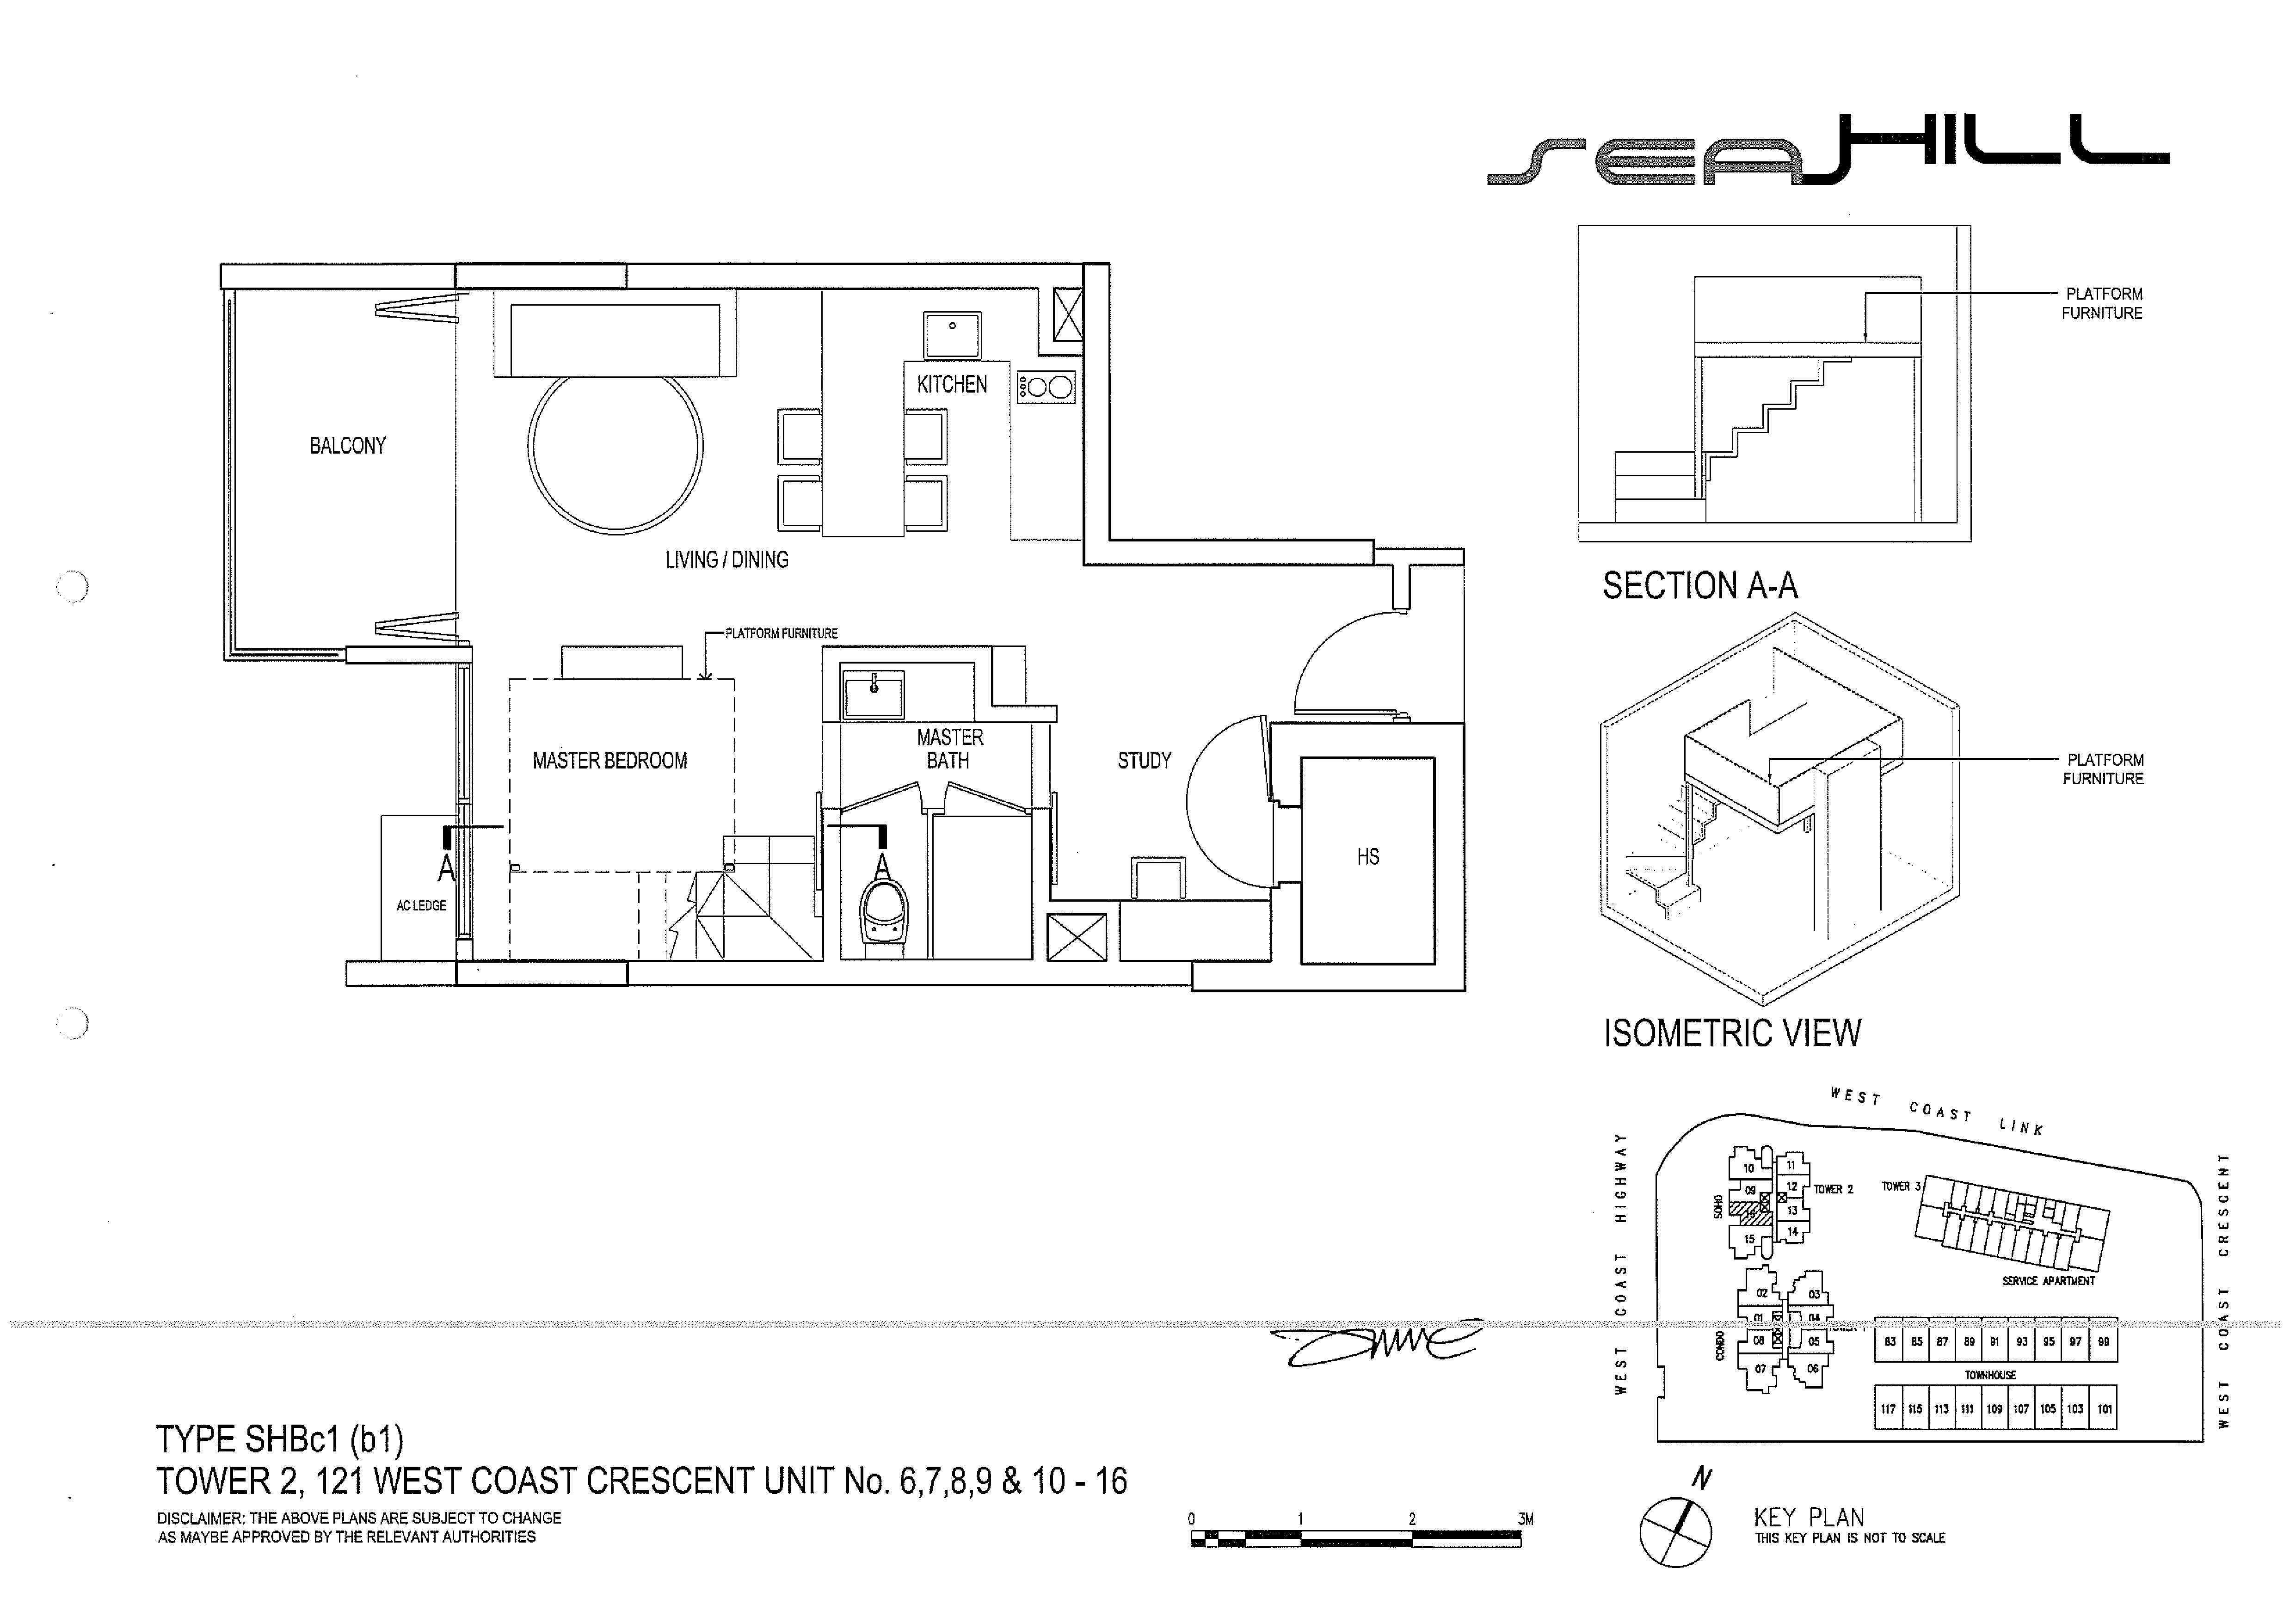 Seahill 1 Bedroom + Study Soho Type SHBc1(b1) Unit 06/07/08/09/10-16 Floor Plans